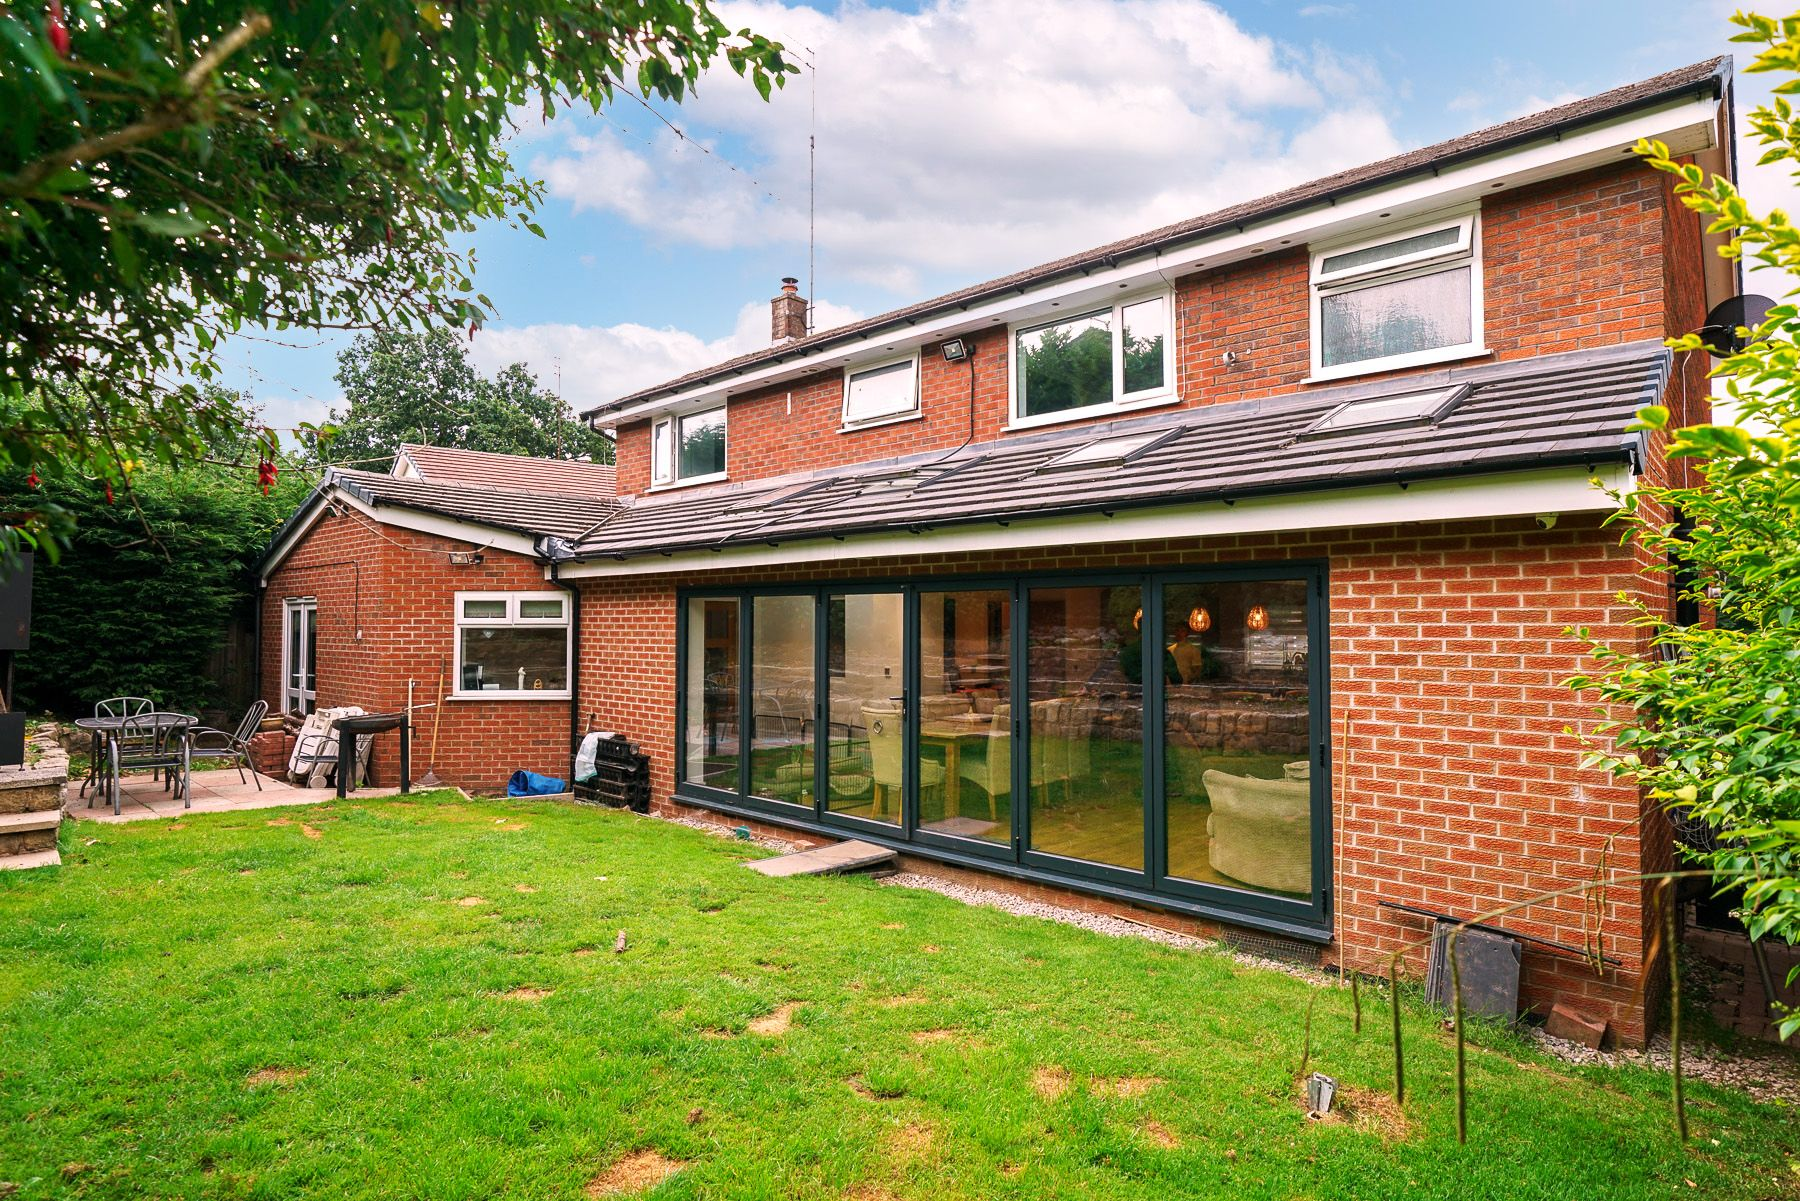 4 bedroom detached house SSTC in Bolton - Photograph 52